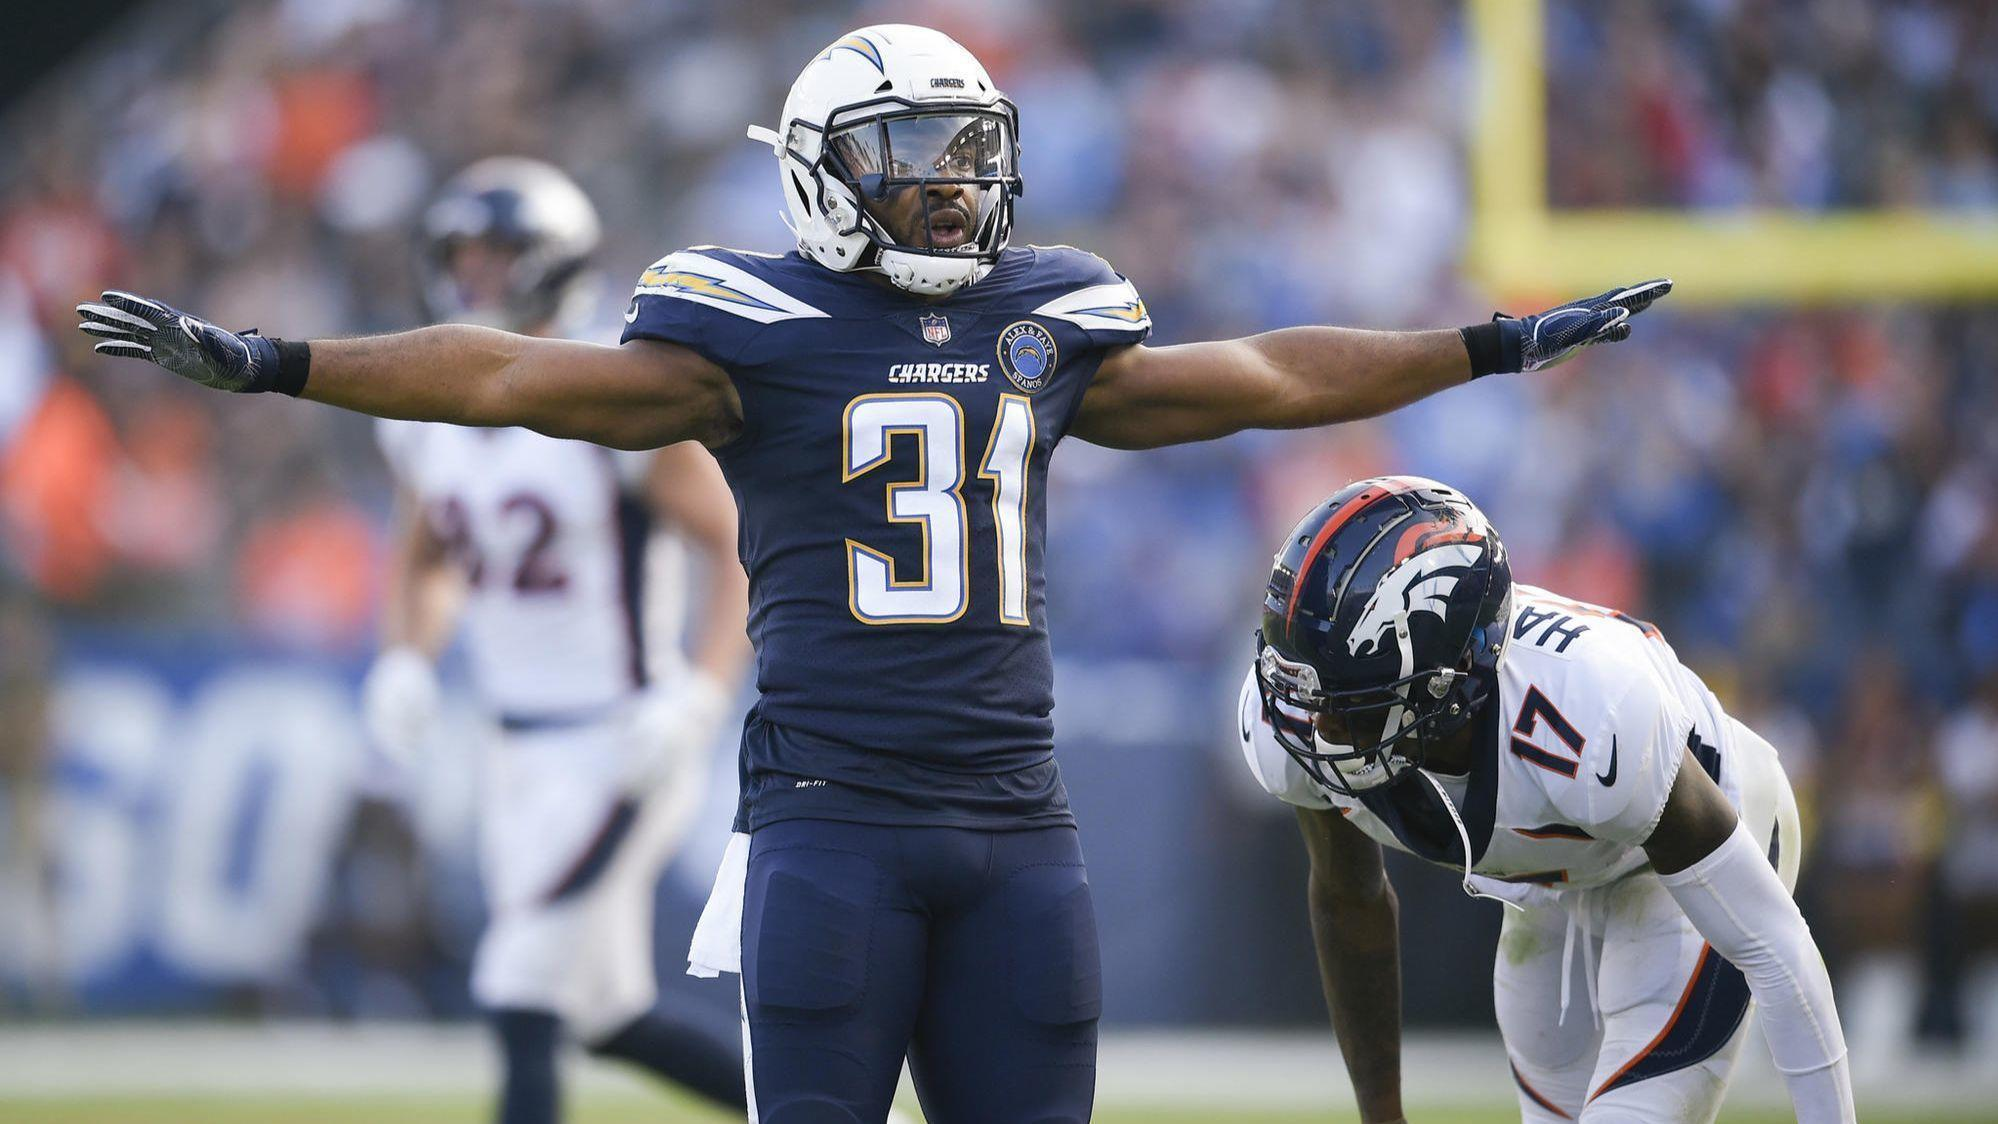 La-sp-chargers-adrian-phillips-chiefs-20181211